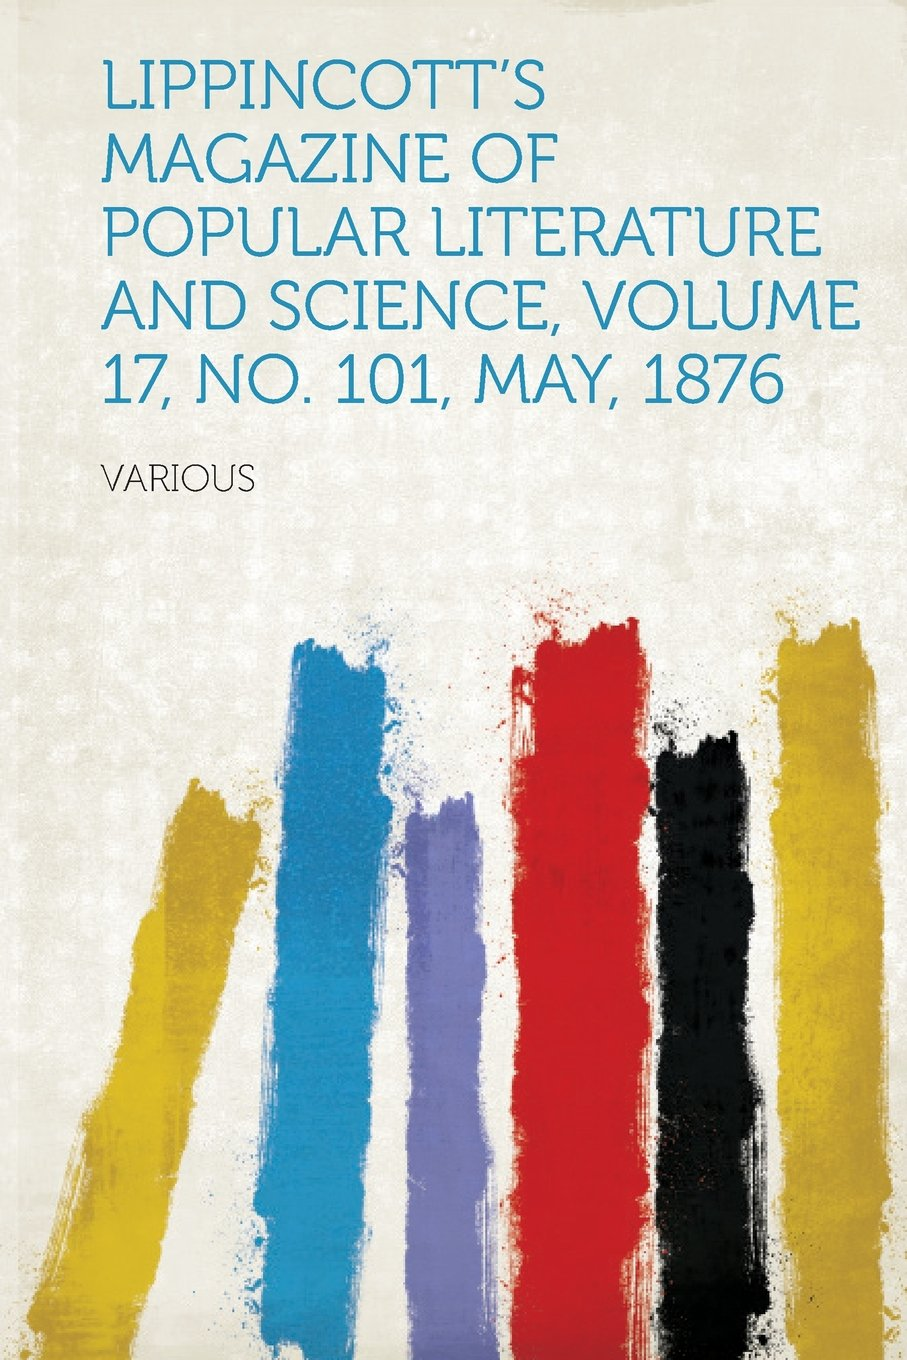 Download Lippincott's Magazine of Popular Literature and Science, Volume 17, No. 101, May, 1876 ebook